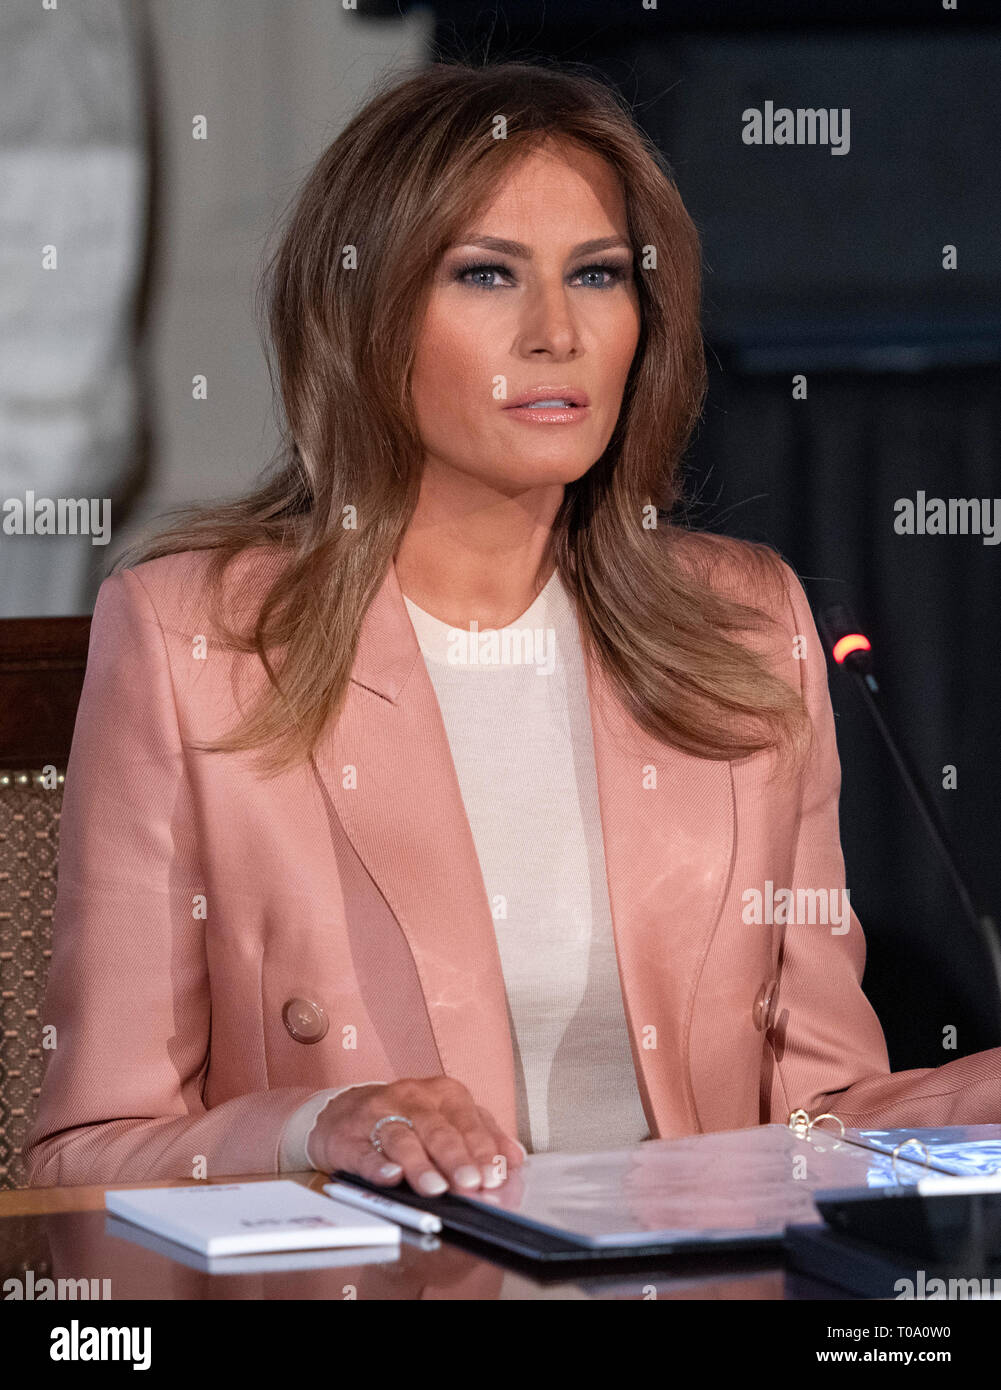 "Washington, USA. 18th Mar 2019. First lady Melania Trump hosts a meeting of the Interagency Working Group on Youth Programs in the State Dining Room of the White House in Washington, DC on Monday, March 18, 2019. The group was originally established under former United States President George W. Bush and is part of an effort to align the First Lady's ""Be Best"" initiative with the working group. Credit: Ron Sachs/CNP 